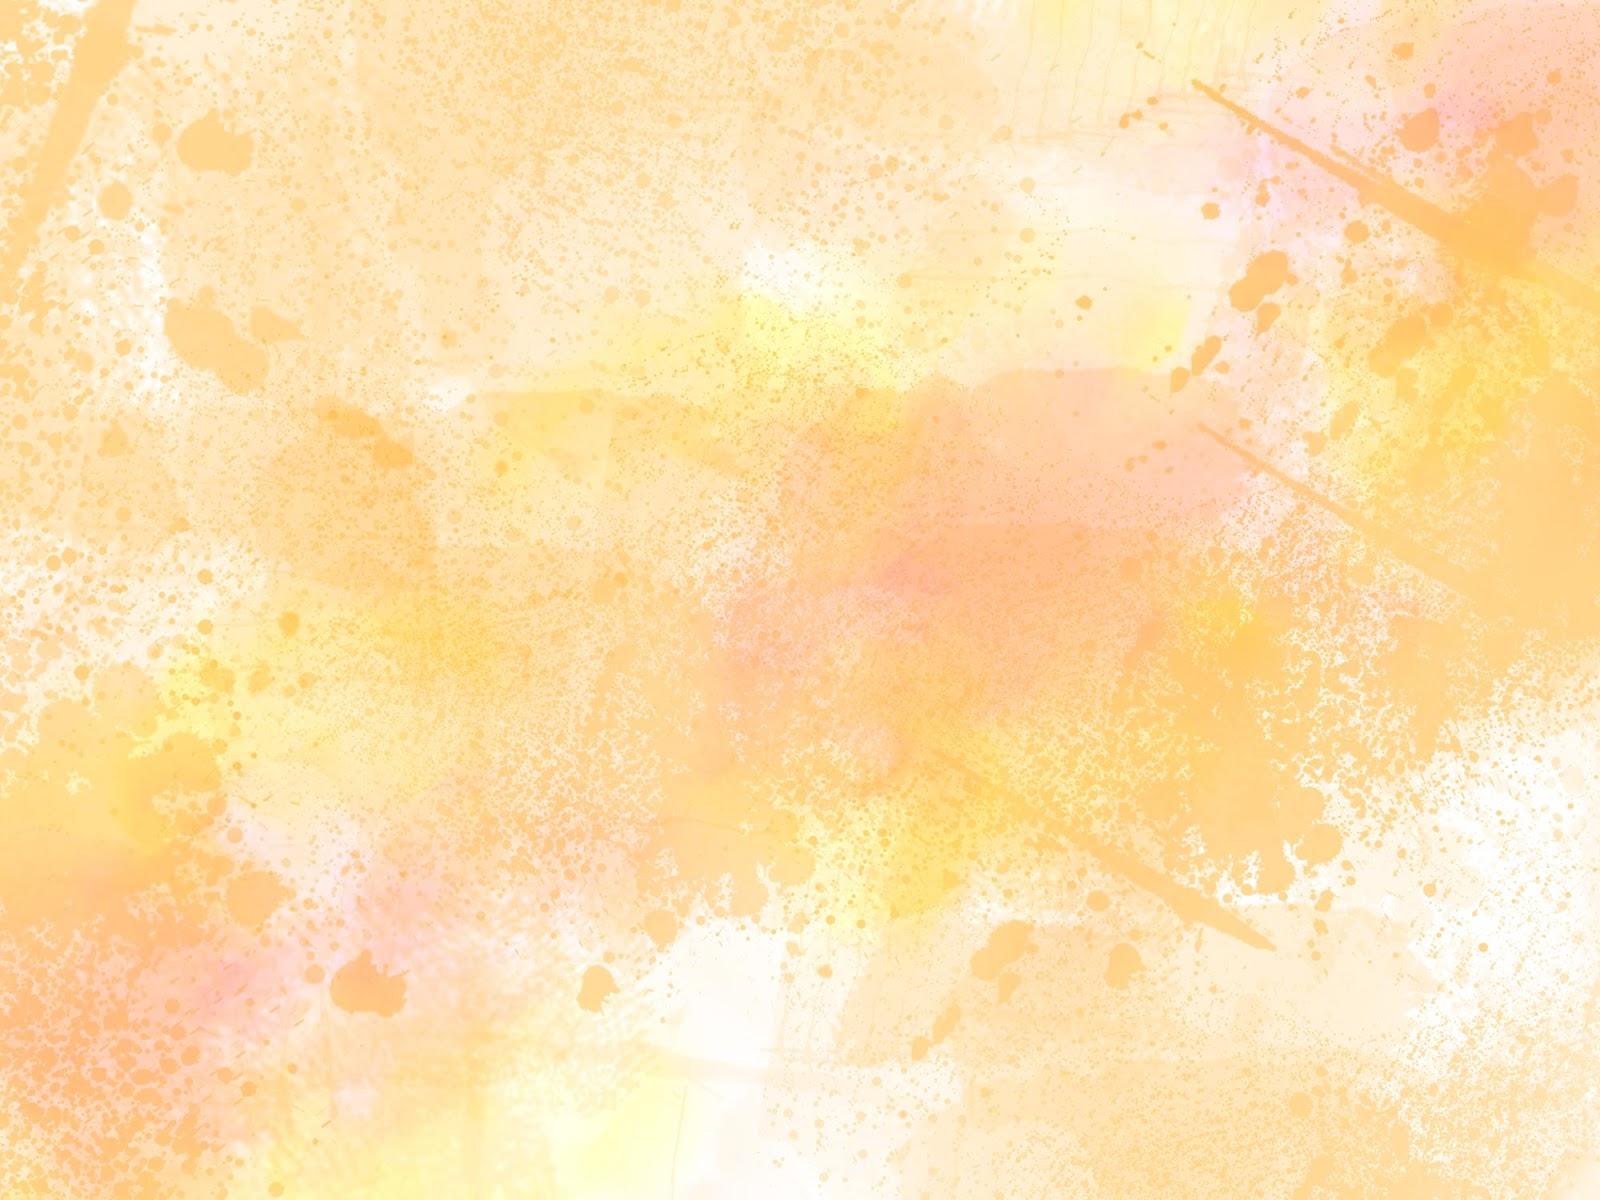 http://4.bp.blogspot.com/-_W64PKb6gDs/T31-nGgvc5I/AAAAAAAAAck/-e078RqcYwU/s1600/Orange-pink-and-yellow-grunge-free-background.jpg